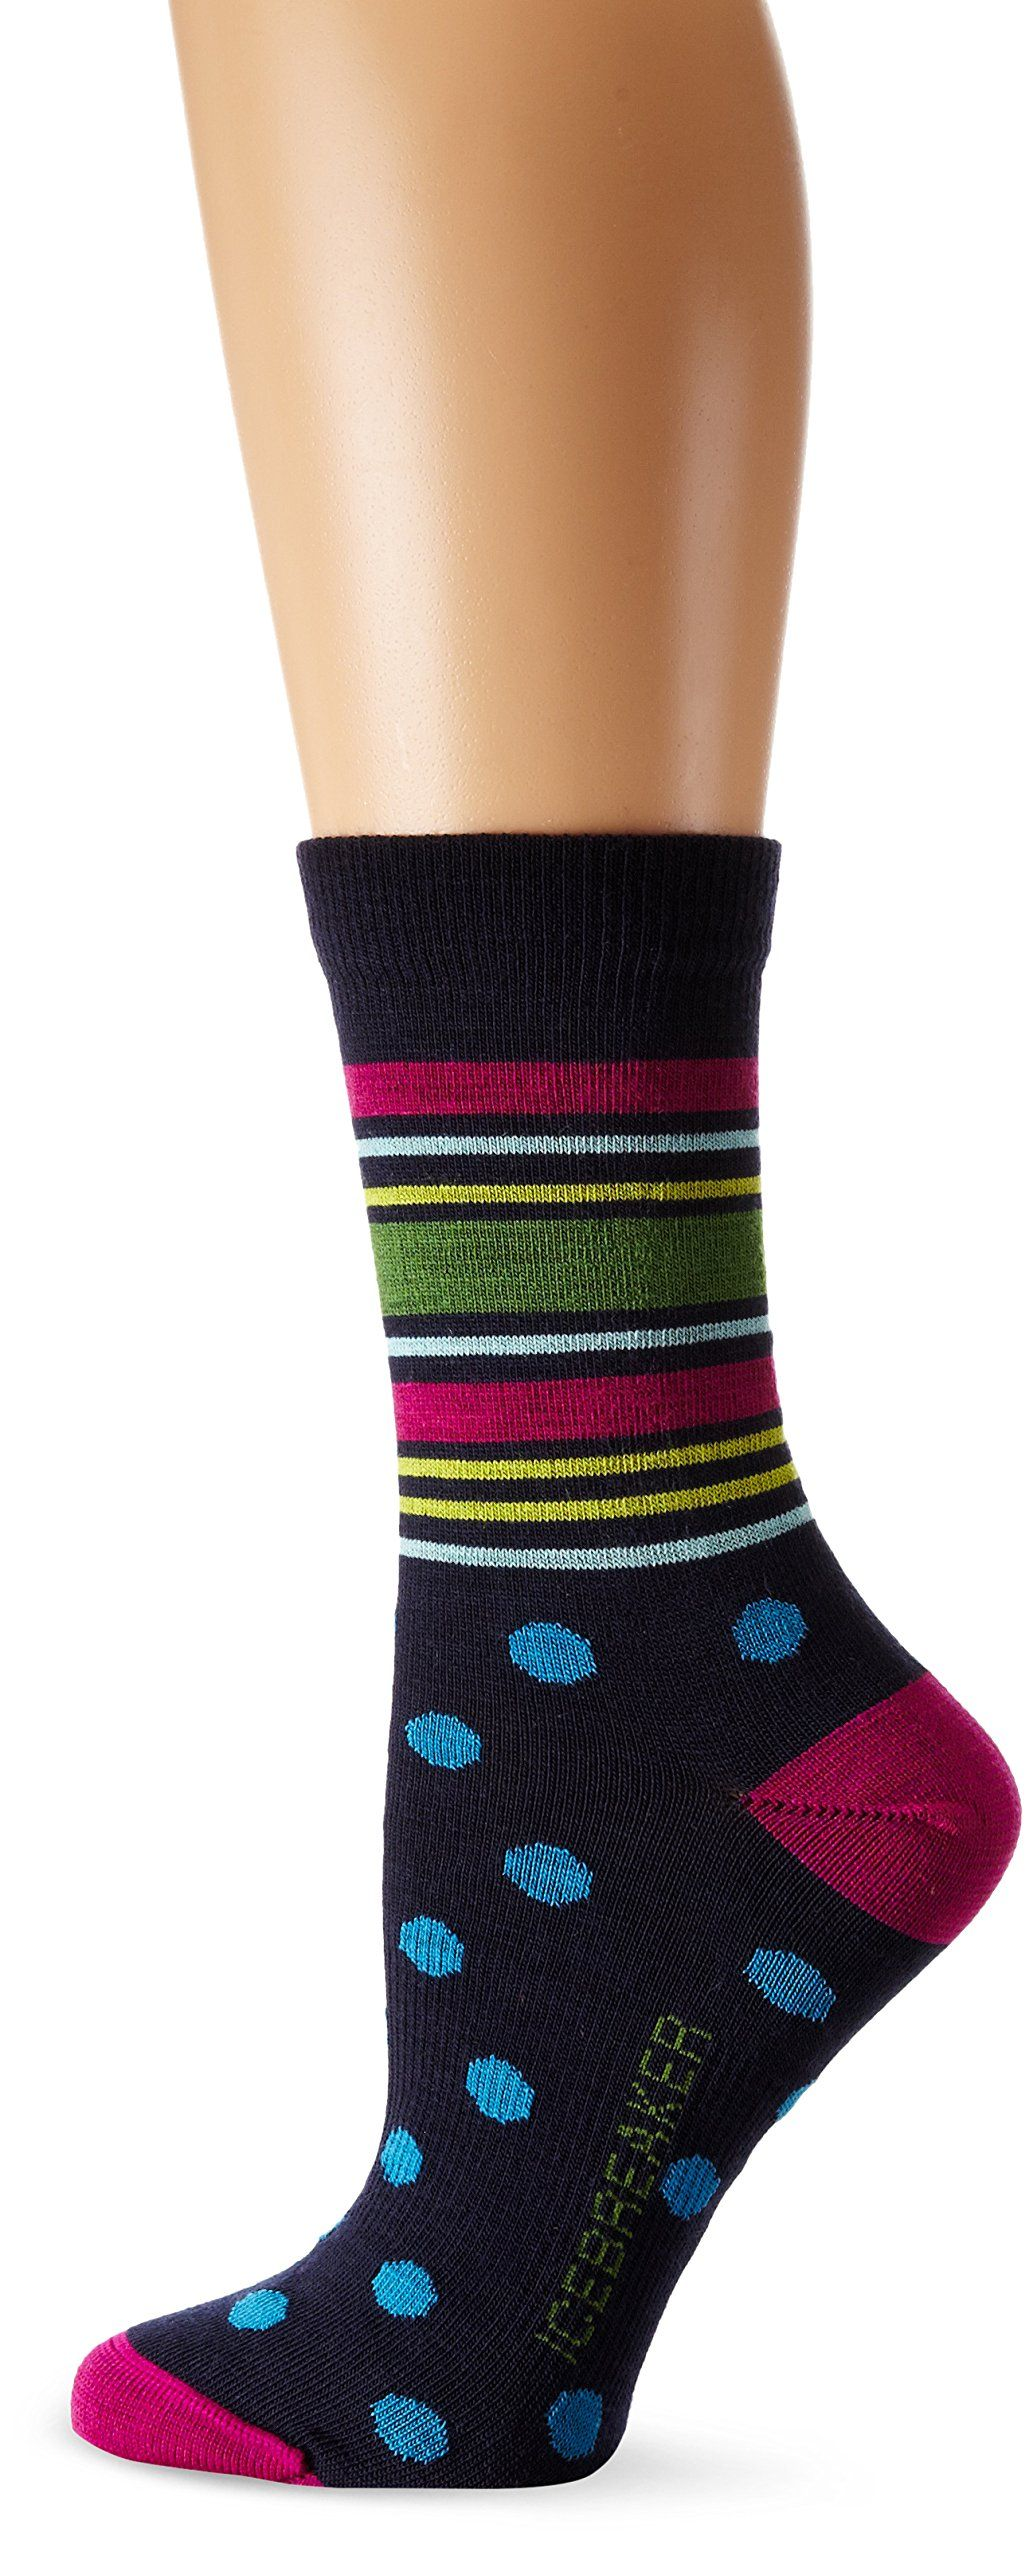 293043c012 Icebreaker Women's Lifestyle Ultra Light 3Q Crew Socks, Small,  Admiral/Magenta/Cruise